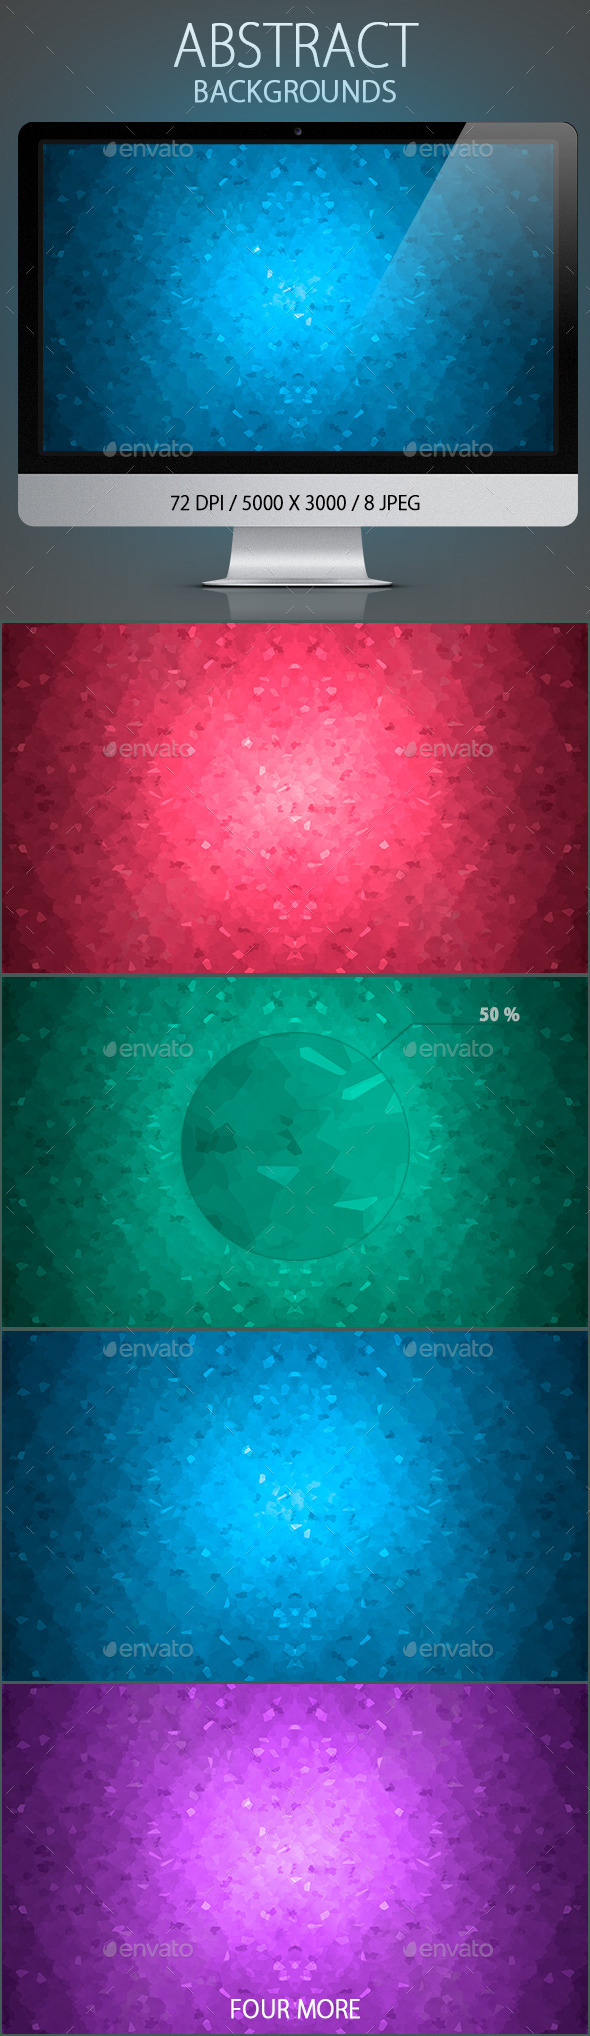 GraphicRiver Abstract Backgrounds 10349848